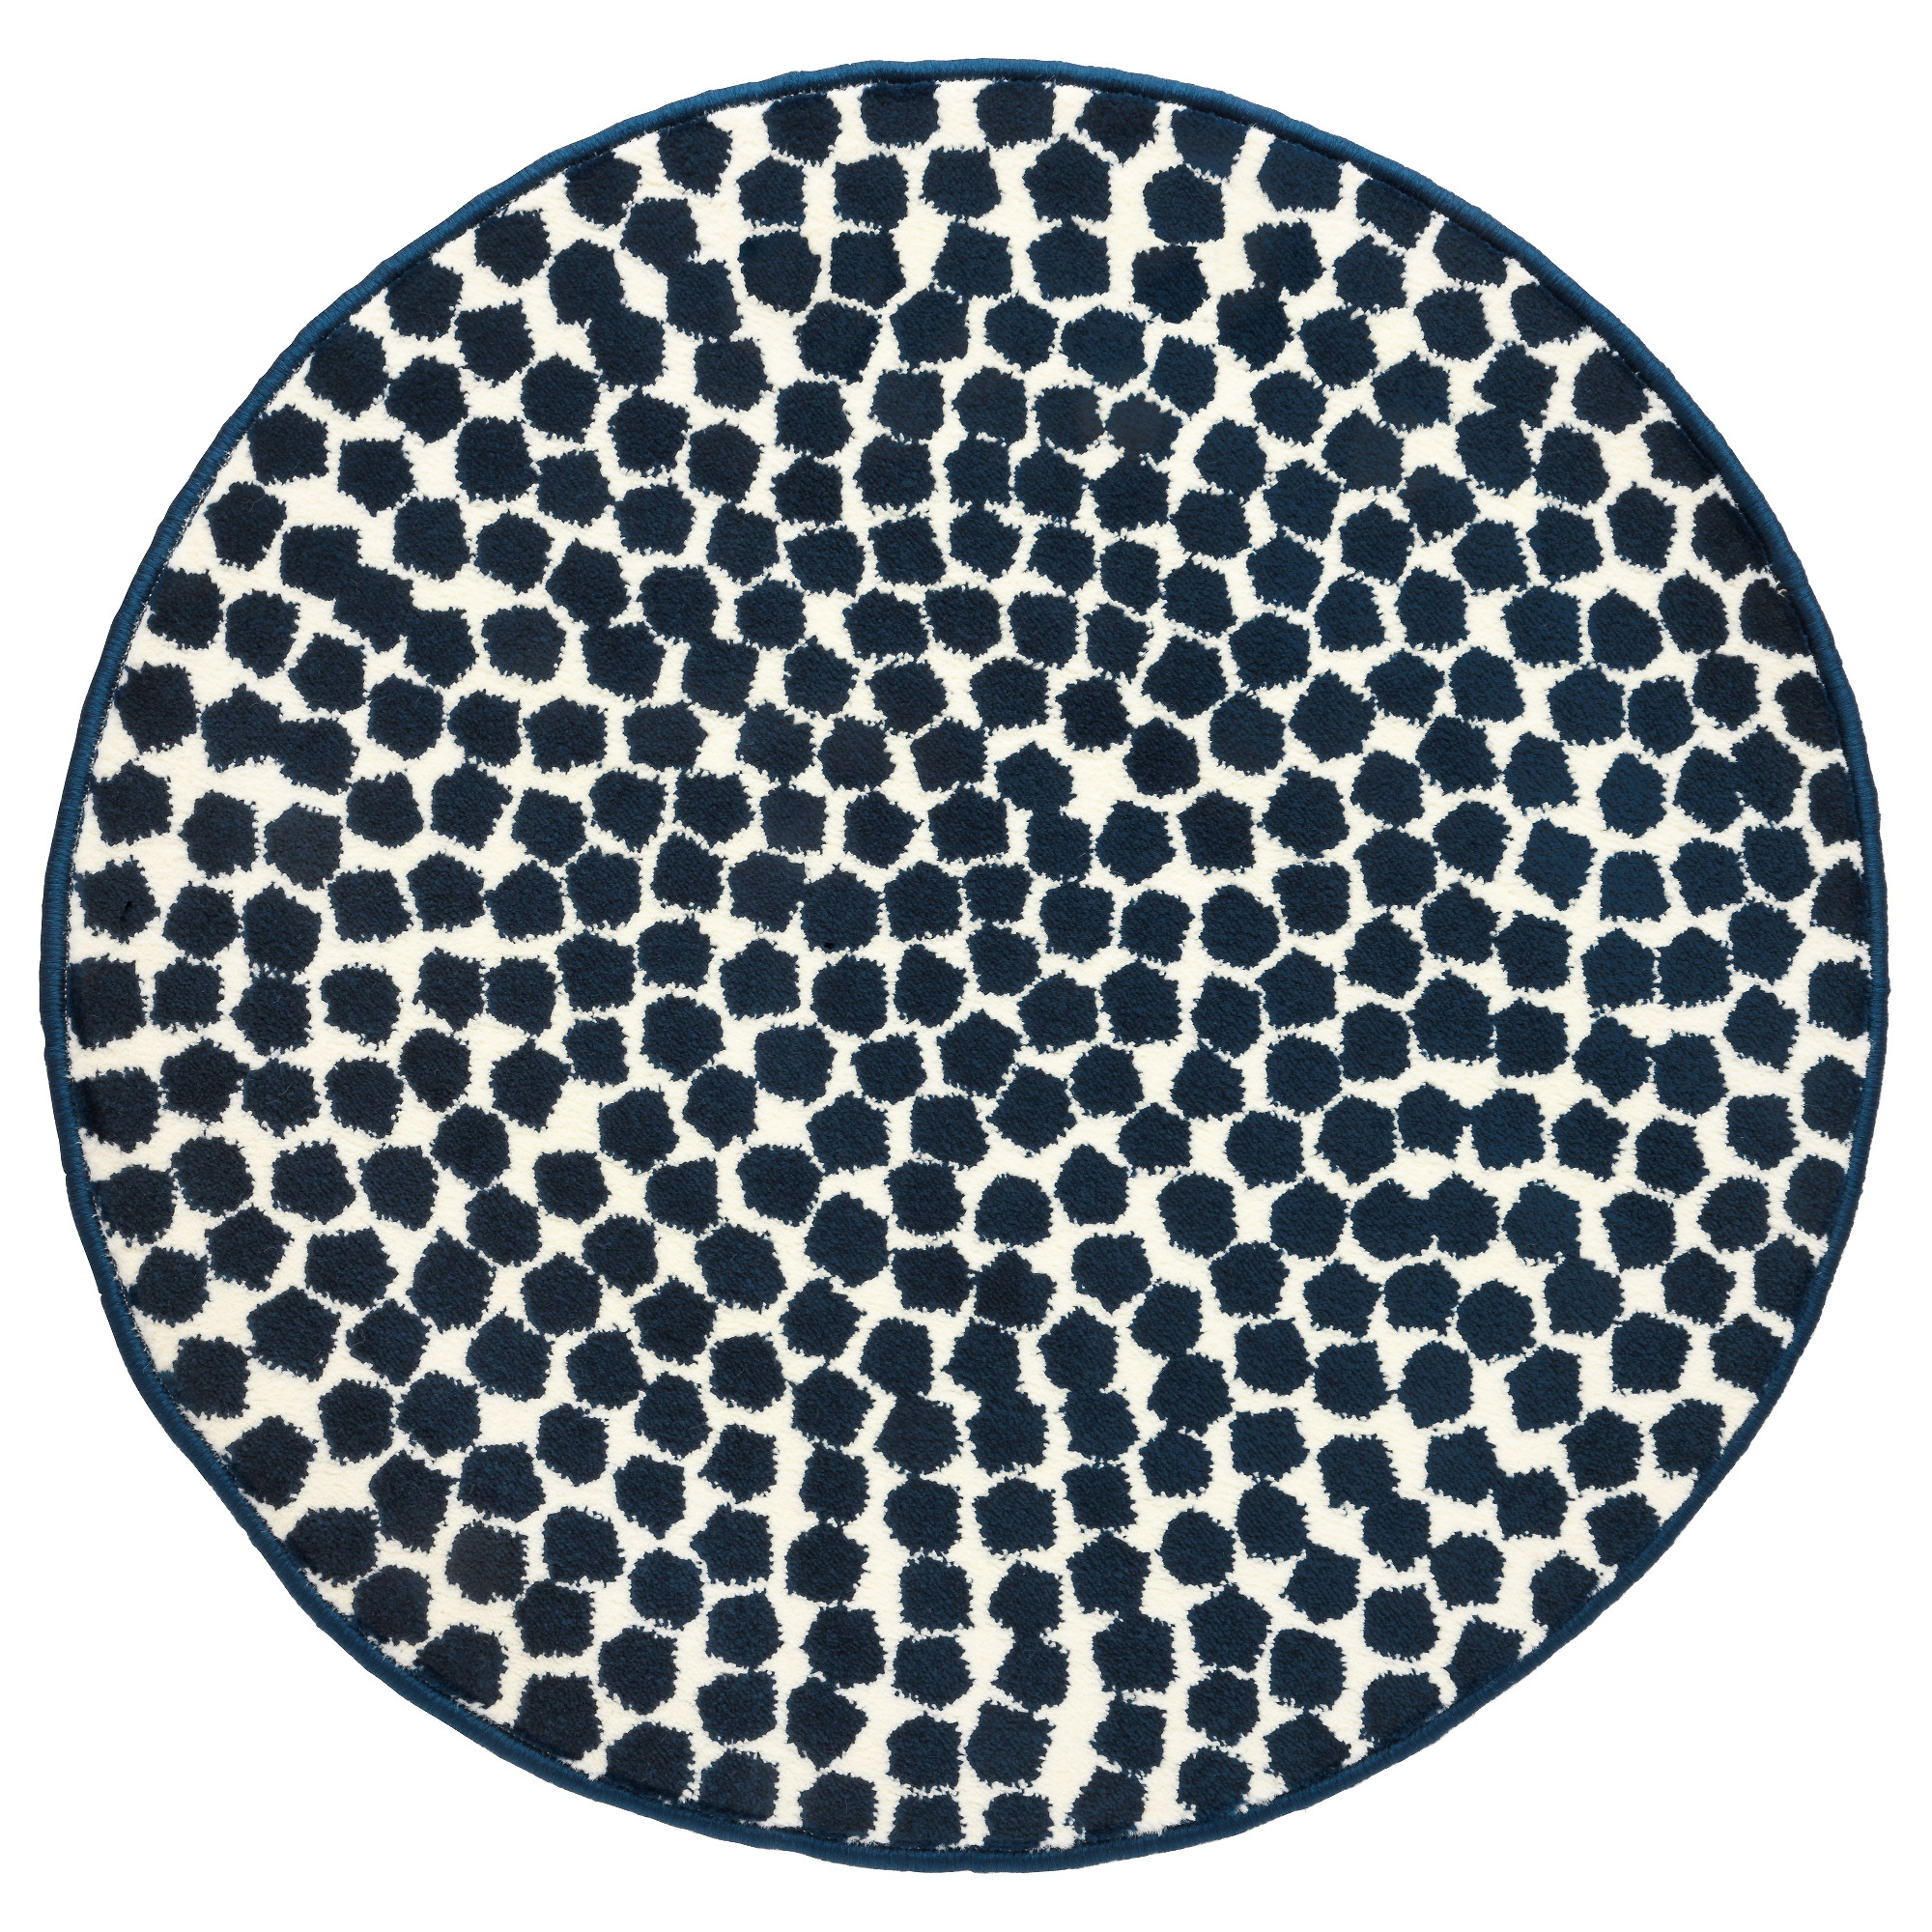 Round Rugs Ikea Throughout Rounds Rugs (Image 10 of 15)